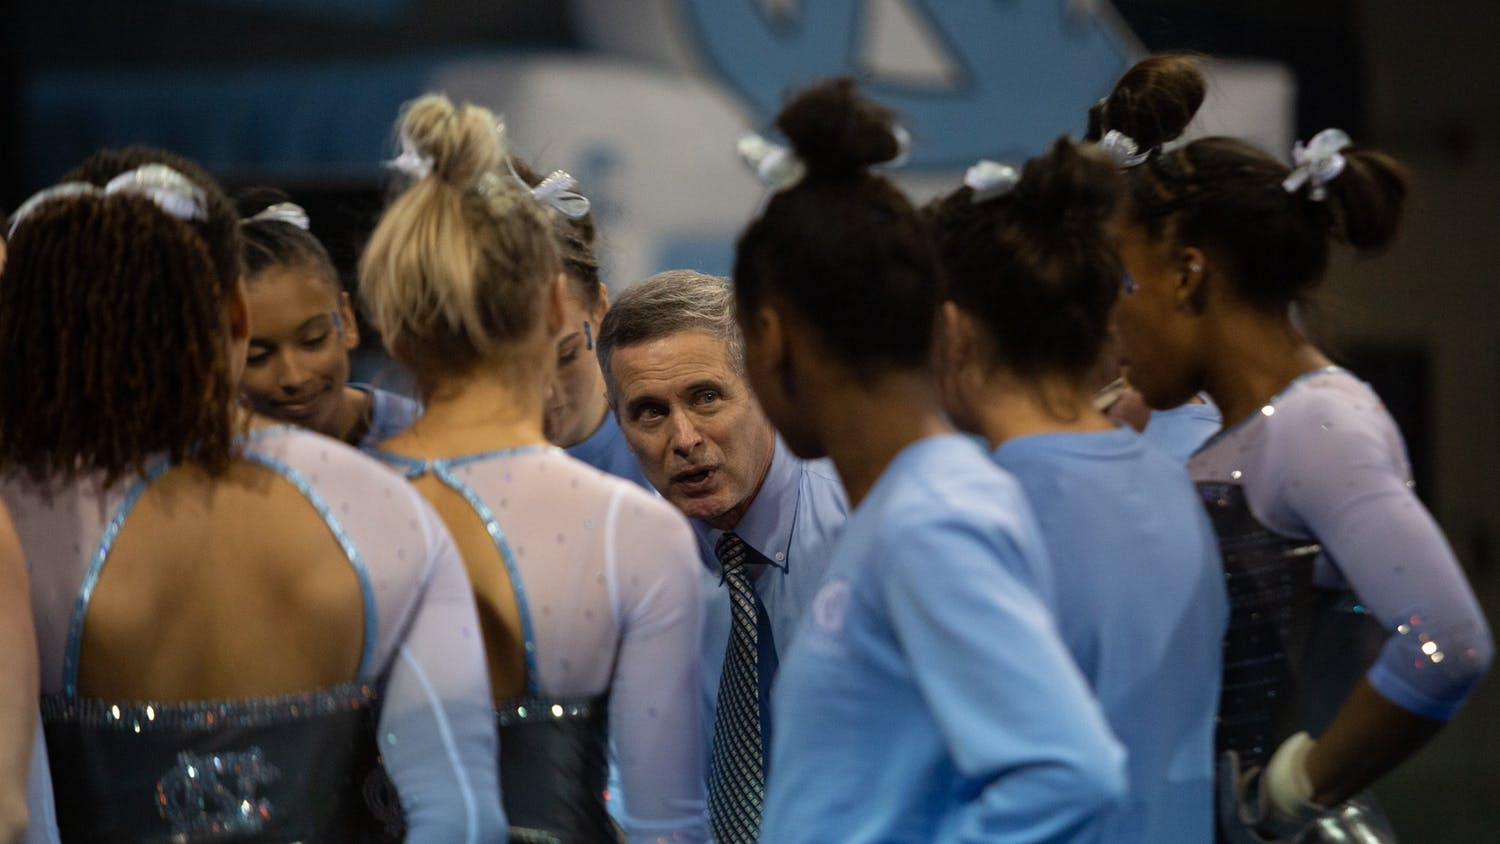 UNC Gymnastics Head Coach Derek Galvin speaks with the team after a meet against University of Pittsburgh on Saturday, Jan. 25, 2020 in Carmichael Arena.